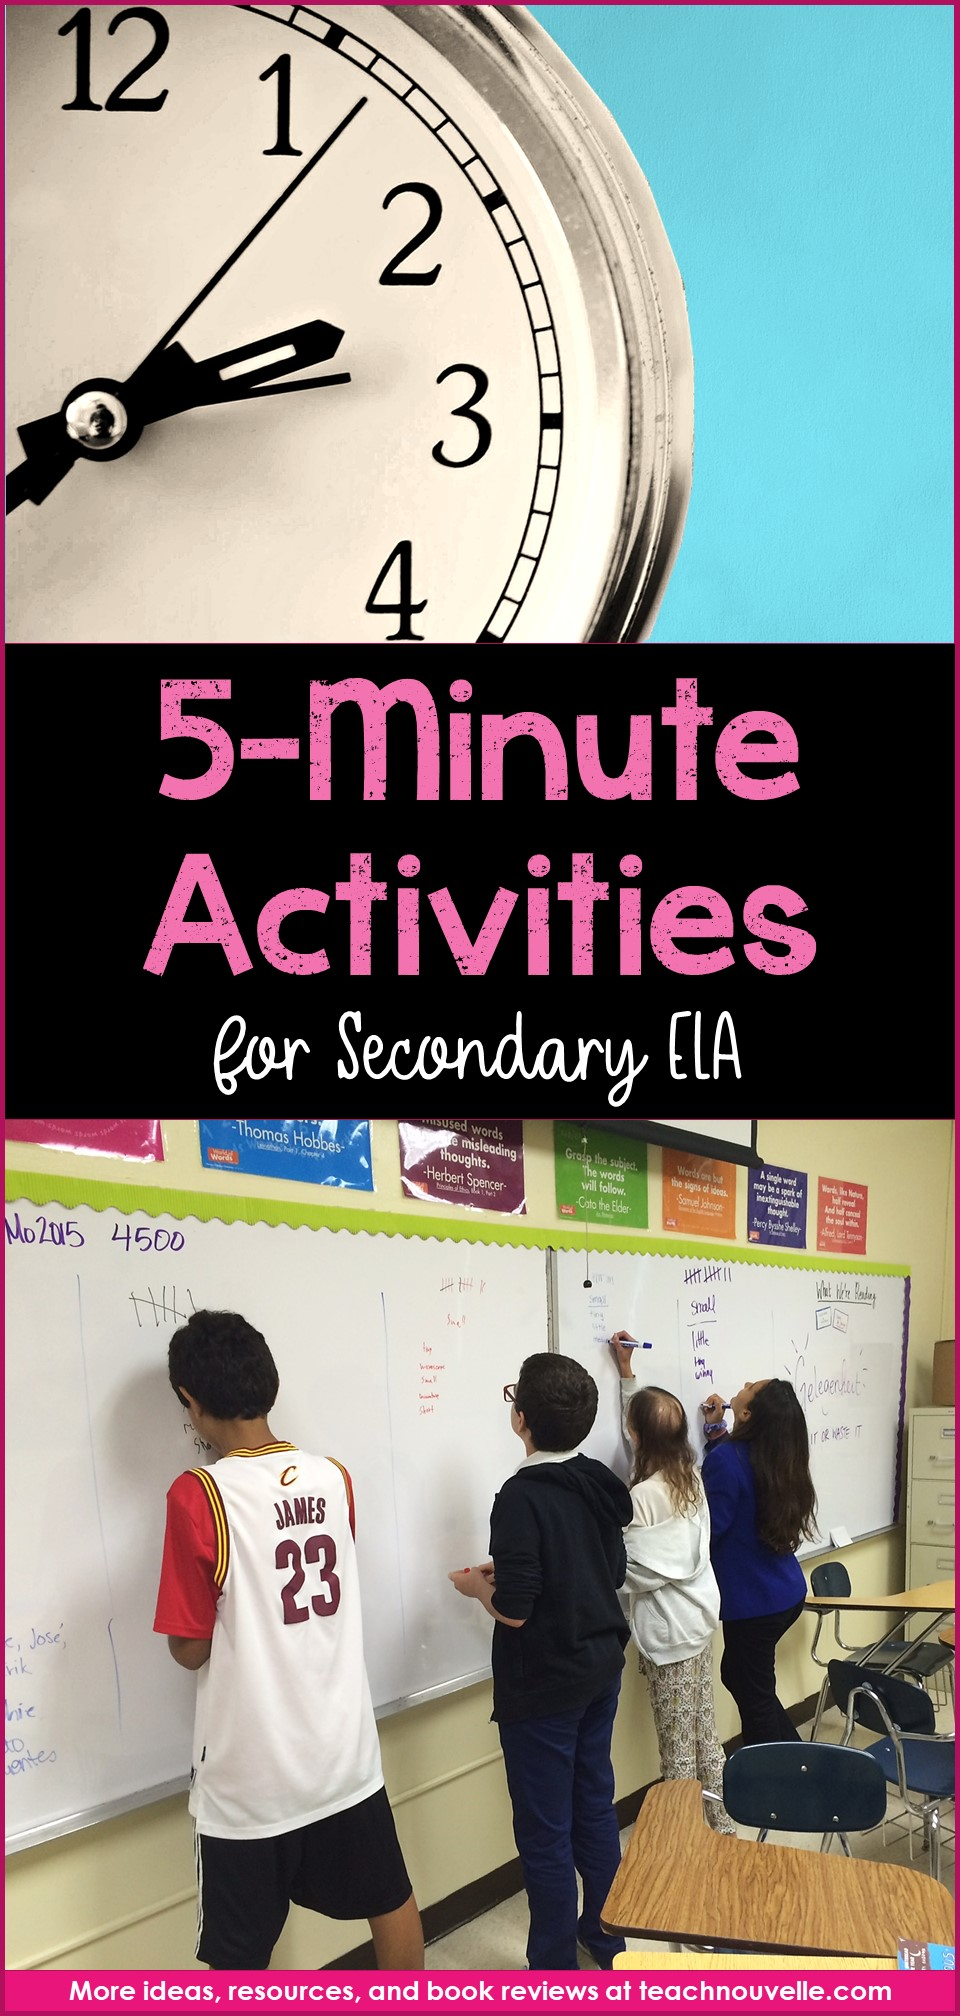 What can you do with five extra minutes in secondary ELA? Here are a few five-minute fillers for keeping your students focused until the bell. (blog post)